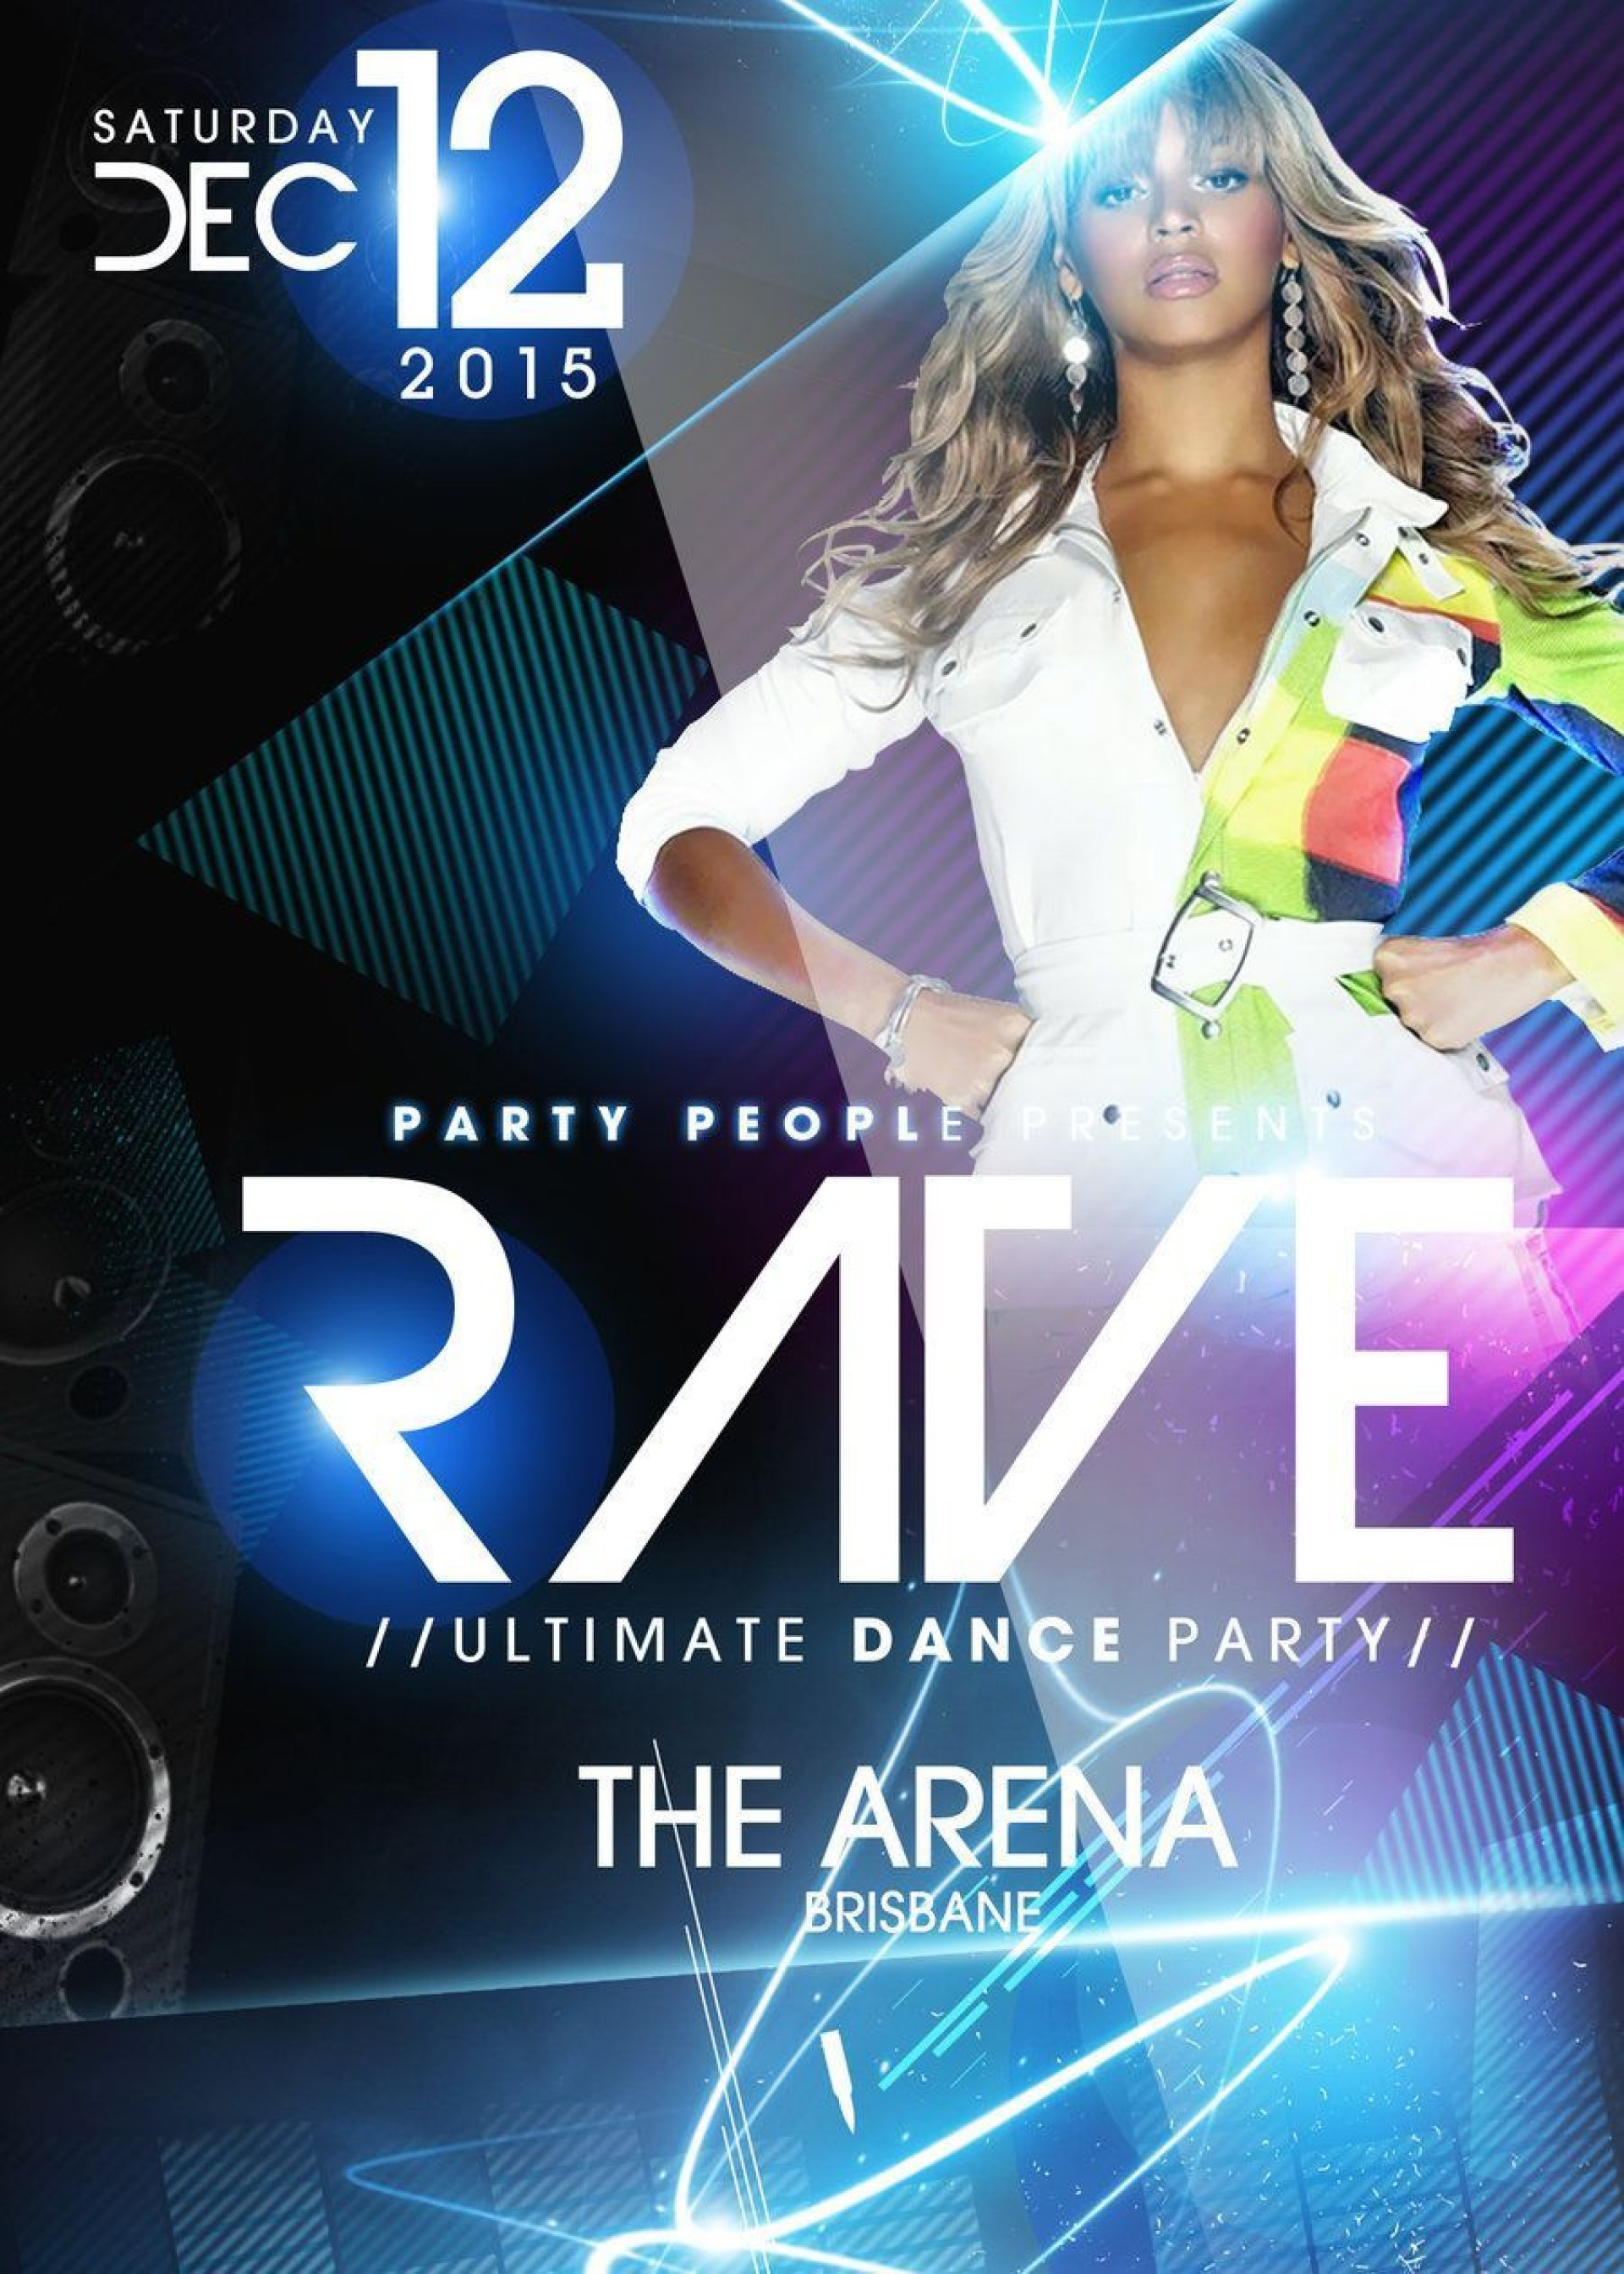 003 Fantastic Free Psd Party Flyer Template Download Photo  - Neon Glow Rave1920